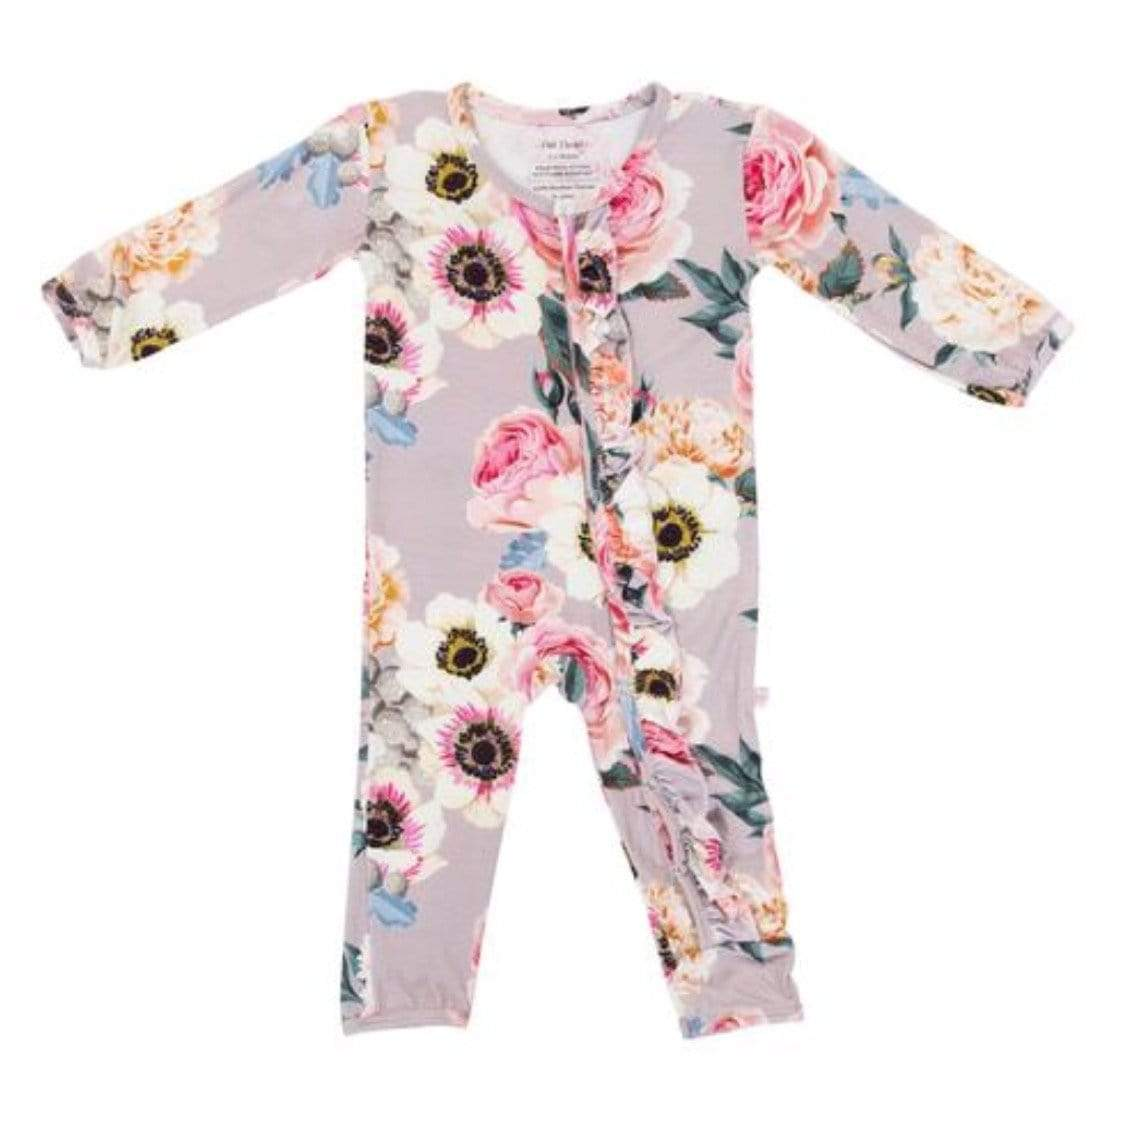 Posh Peanut - French Gray Baby Girls One Piece Romper Romper Posh Peanut